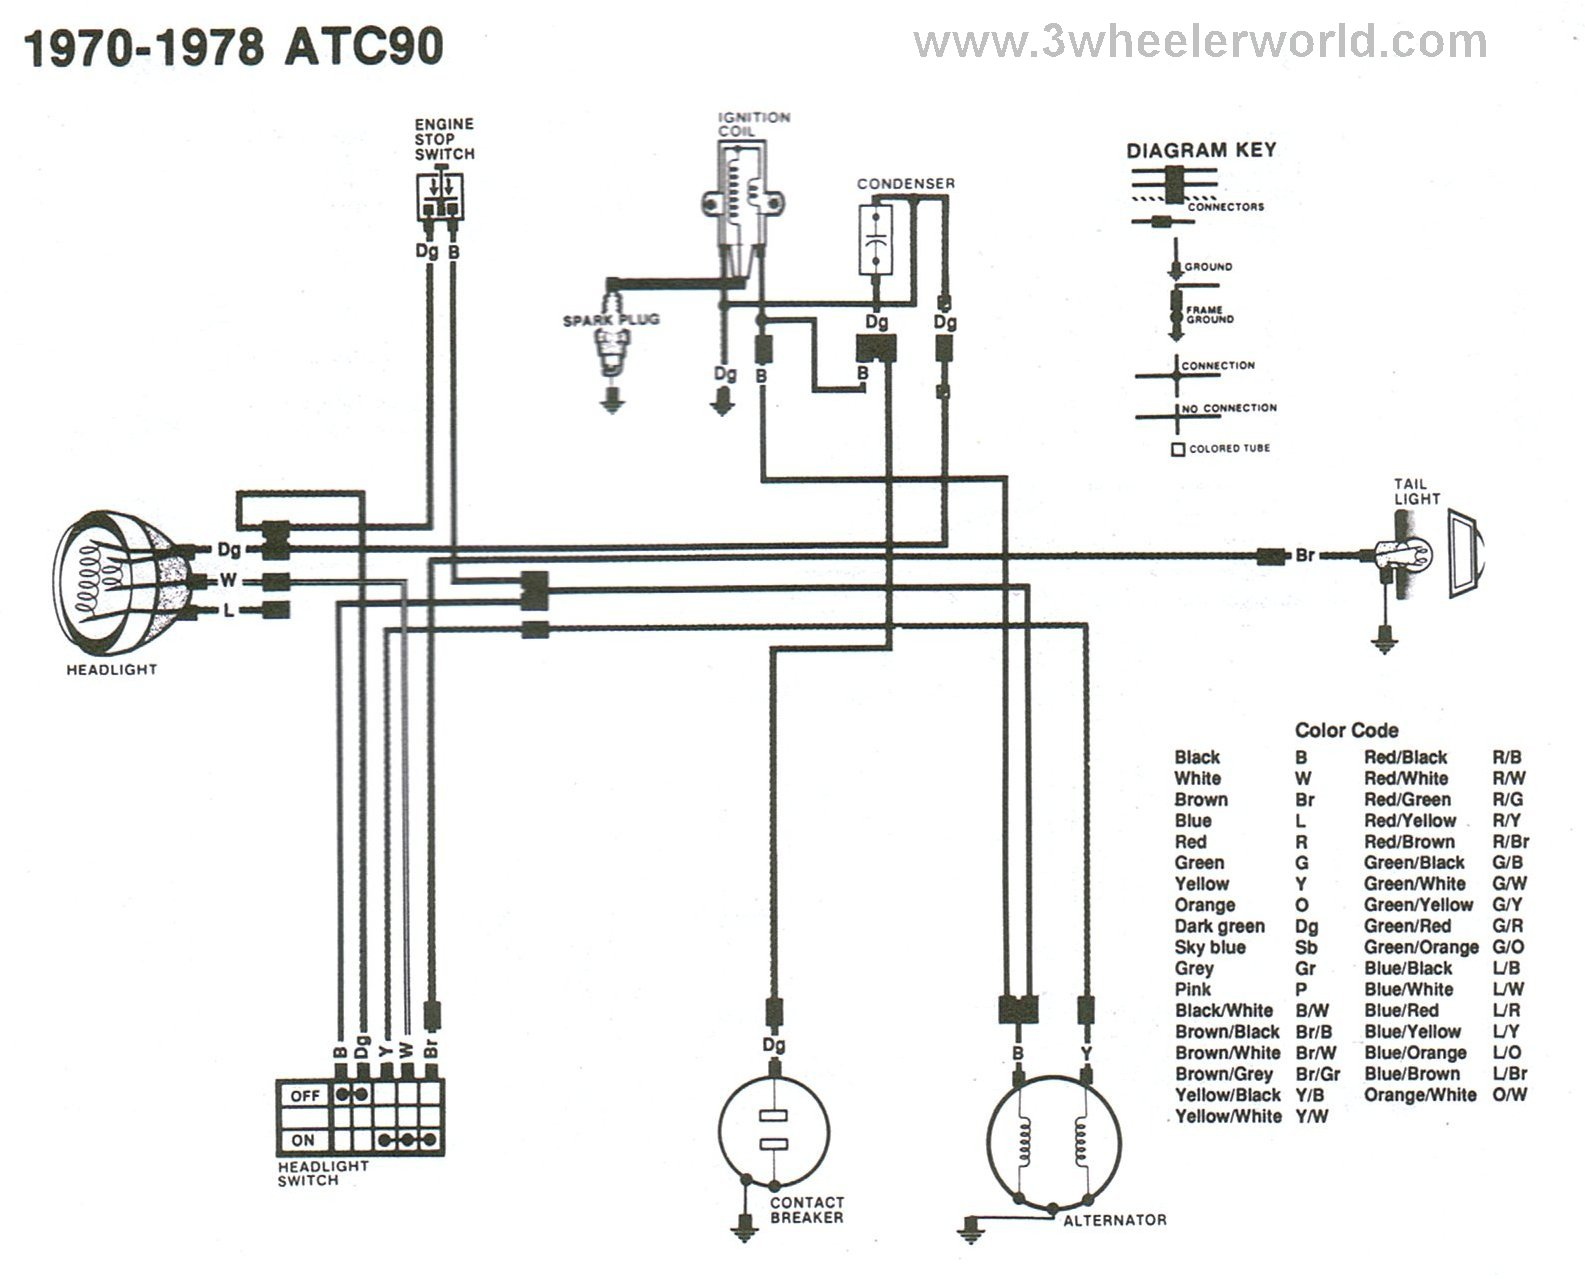 ATC90x70Thru78 3 wheeler world tech help honda wiring diagrams Basic Electrical Wiring Diagrams at gsmx.co